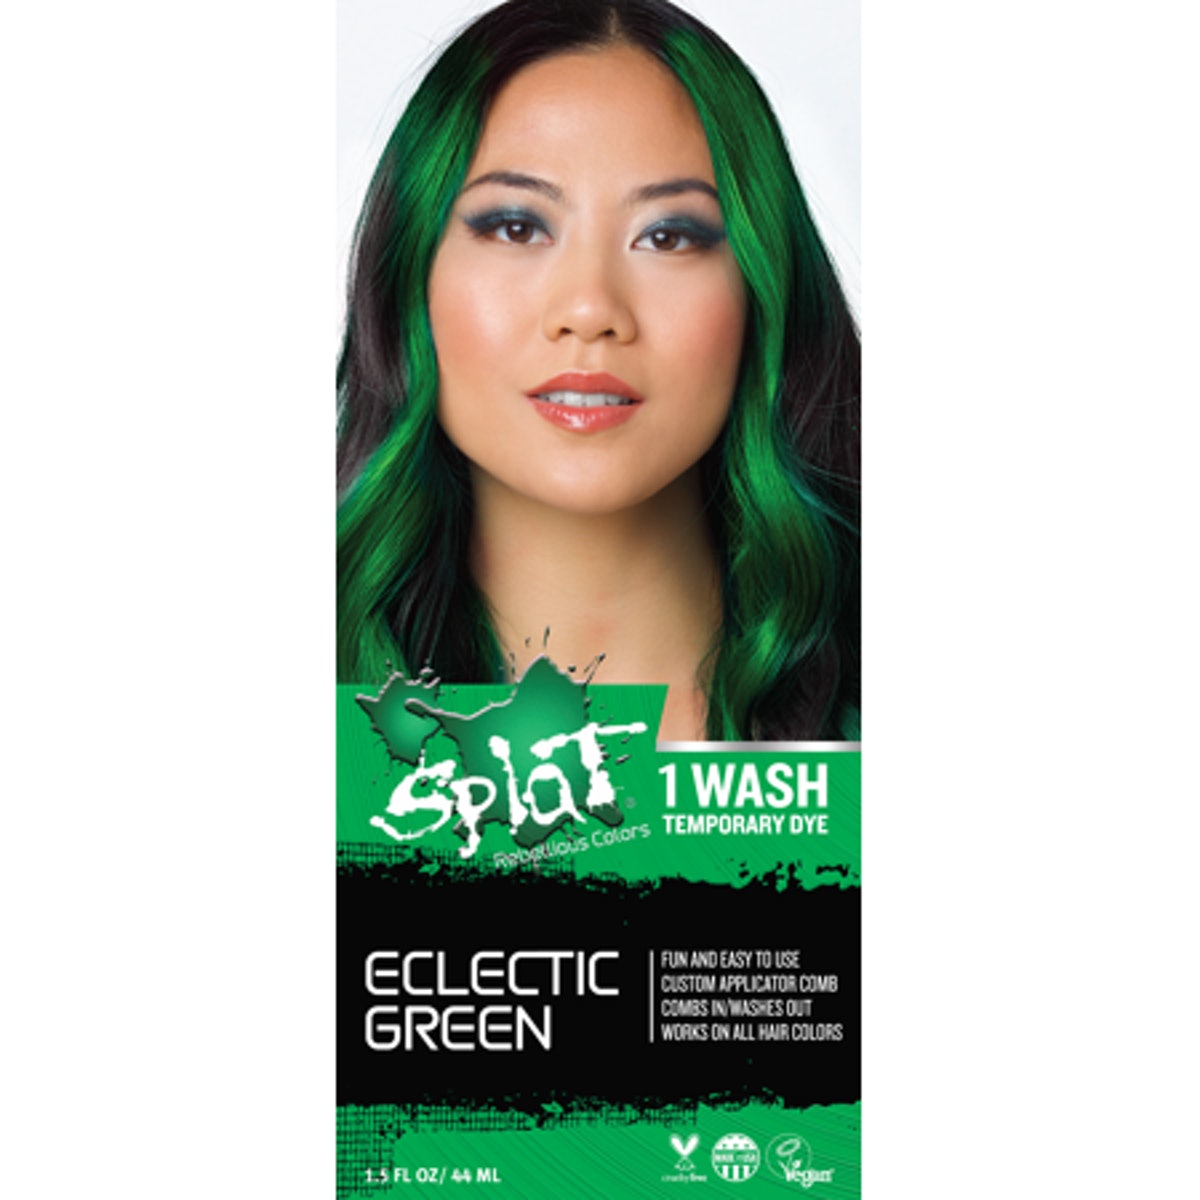 """Splat 1 Wash No Bleach Hair Color Kit in """"Eclectic Green"""""""